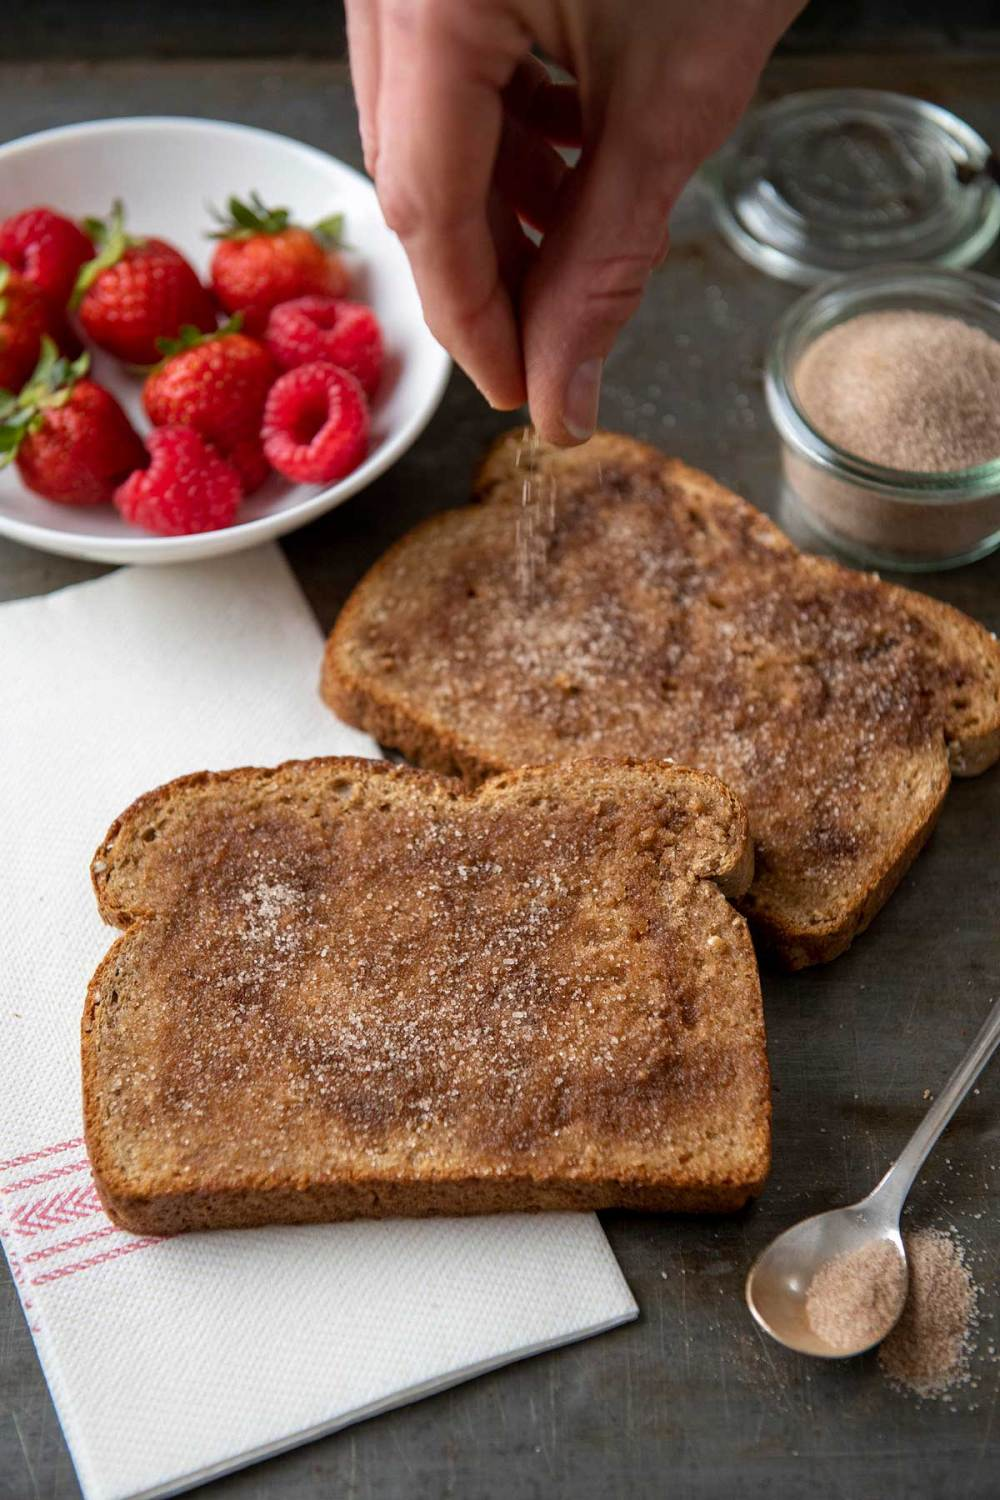 Warm hearts and stomachs with this super simple breakfast that takes mere minutes to make. The perfect balance of cinnamon and sugar (and keeping the mixture on hand to use whenever needed) is the secret to success!